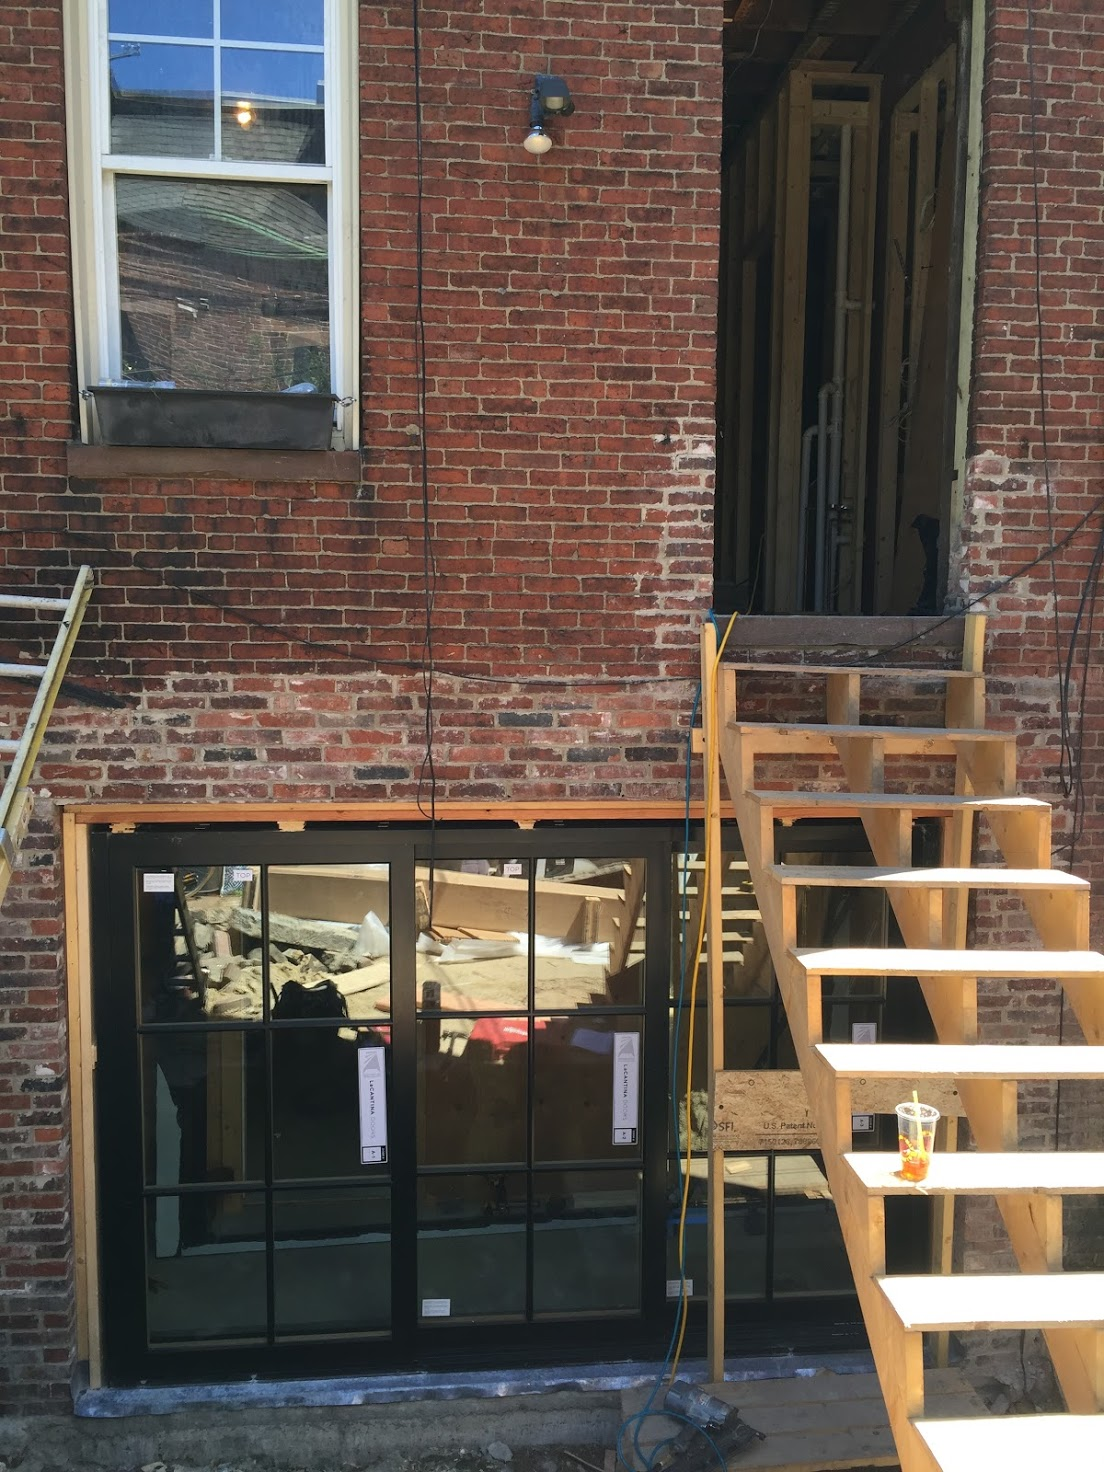 The La Cantina doors in place. Check out the nifty staircase the contractors built so they could get in and out of the kitchen, eliminating the need to track in and out of our living space.